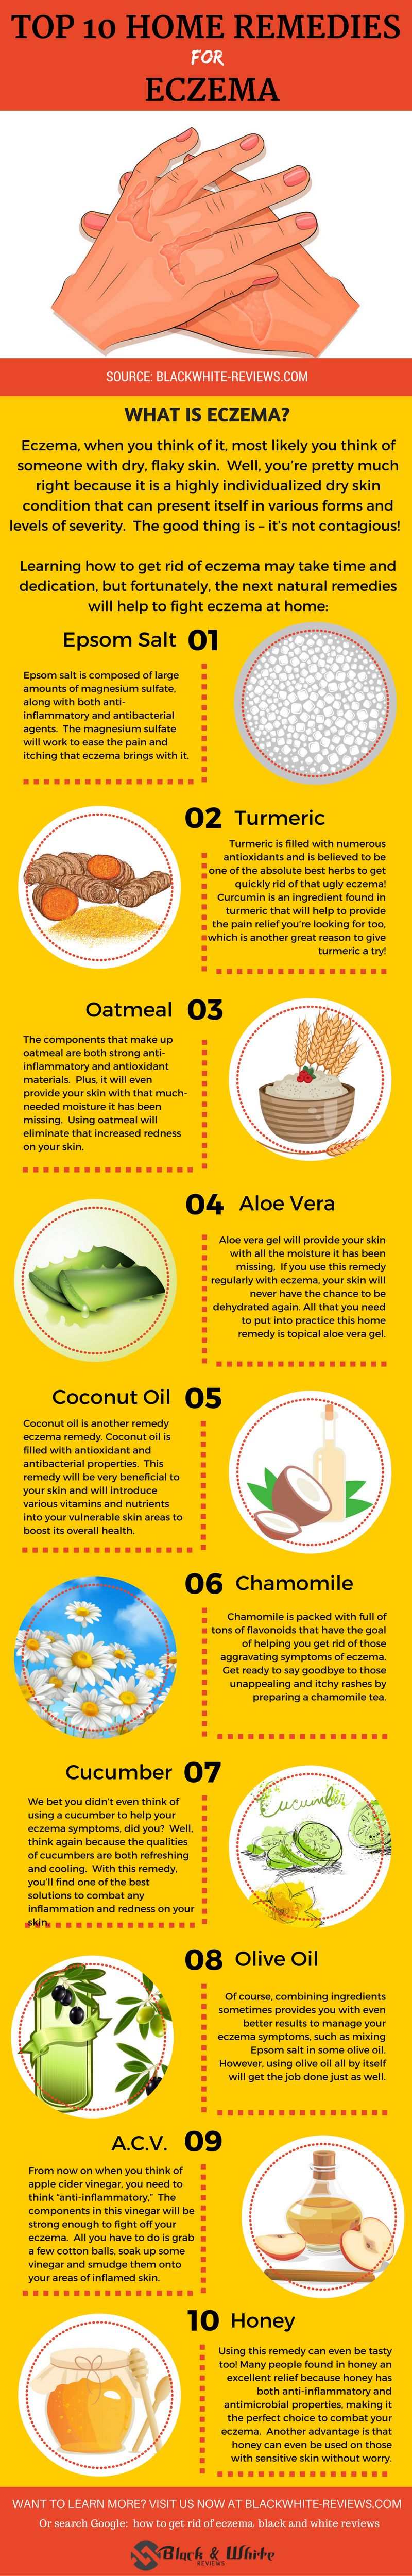 top 10 home remedies for eczema - infographic